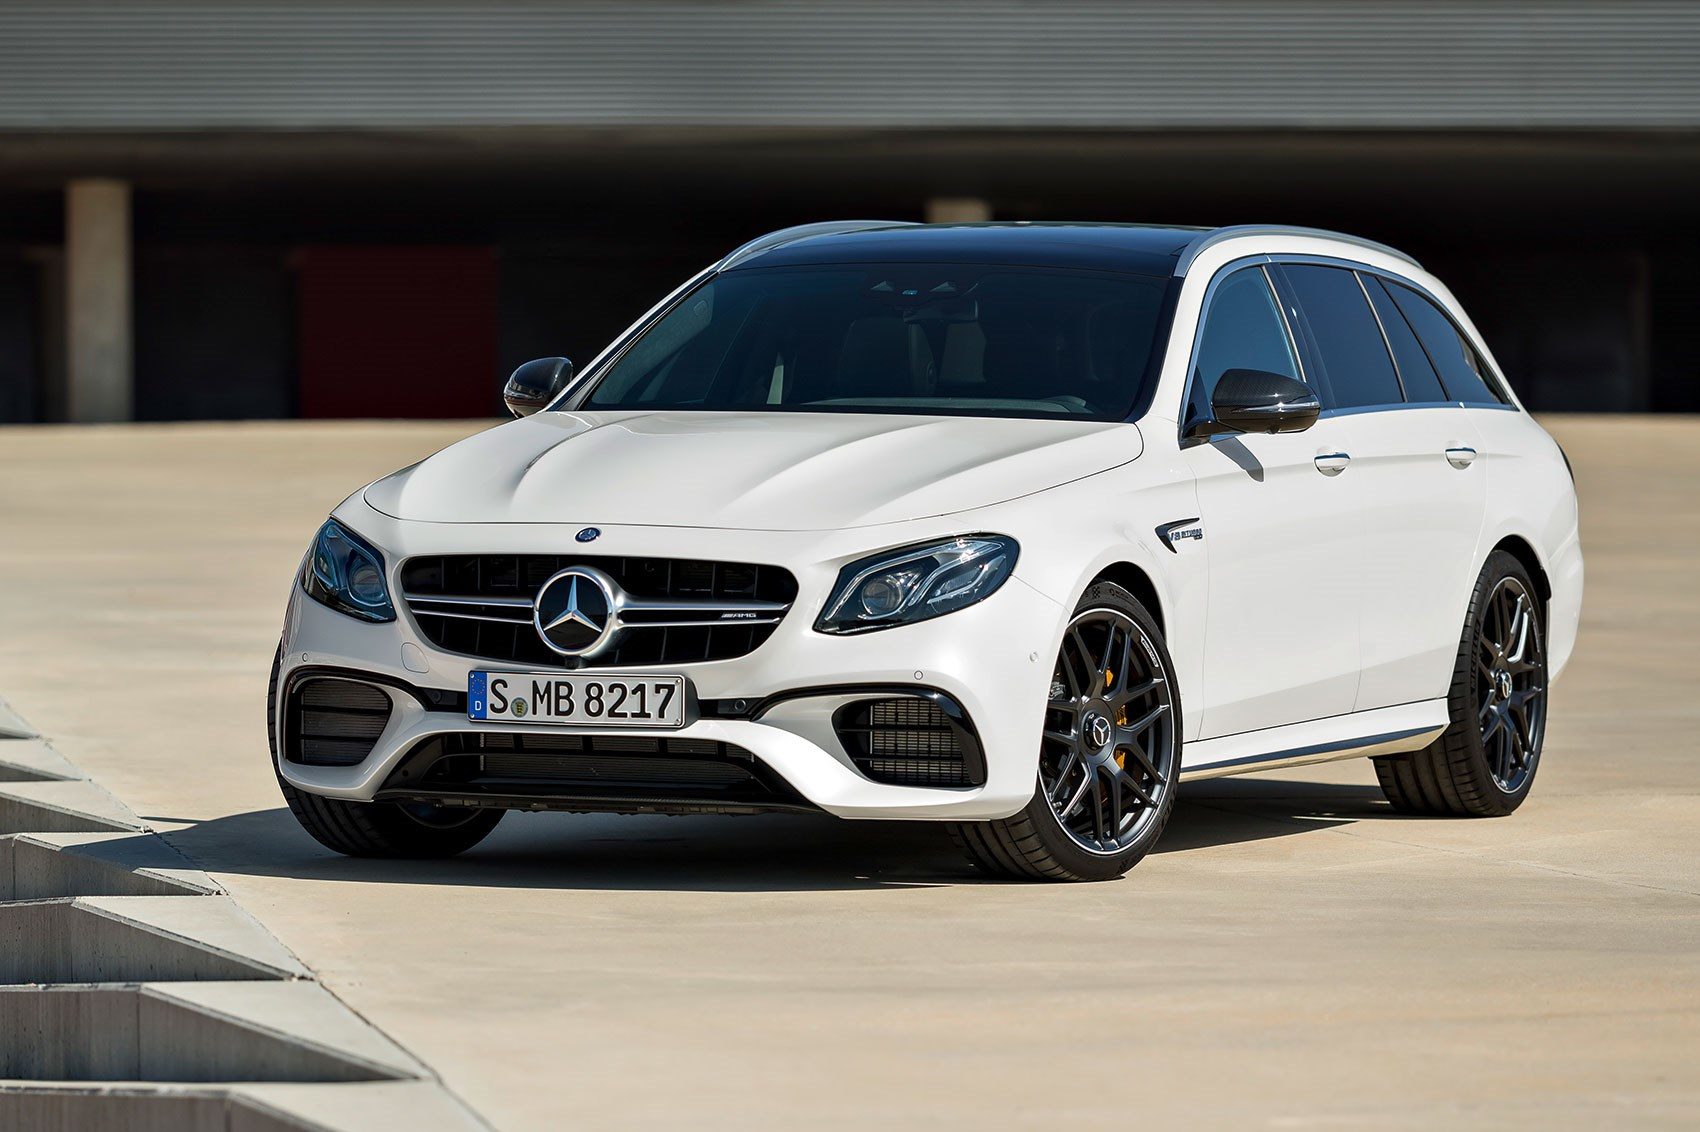 mercedes amg e63 4matic estate prices revealed for 2017 s fastest wagon by car magazine. Black Bedroom Furniture Sets. Home Design Ideas